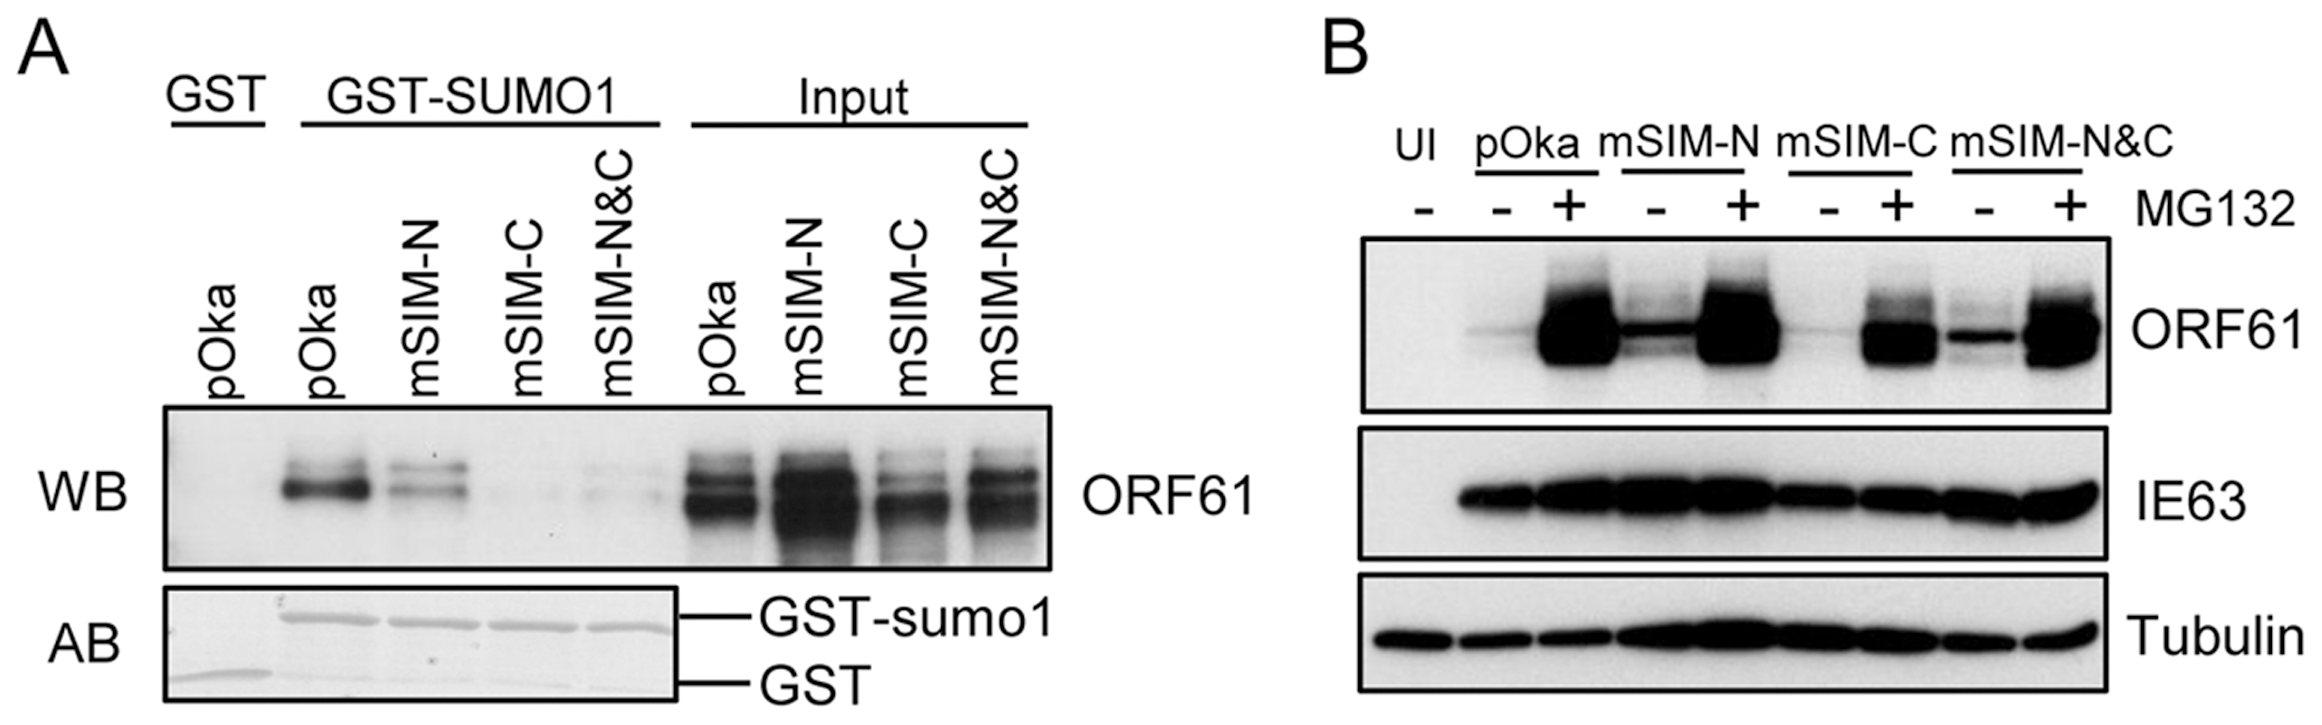 ORF61 SIMs are essential for the SUMO-binding capacity of ORF61 expressed in VZV-infected cells.